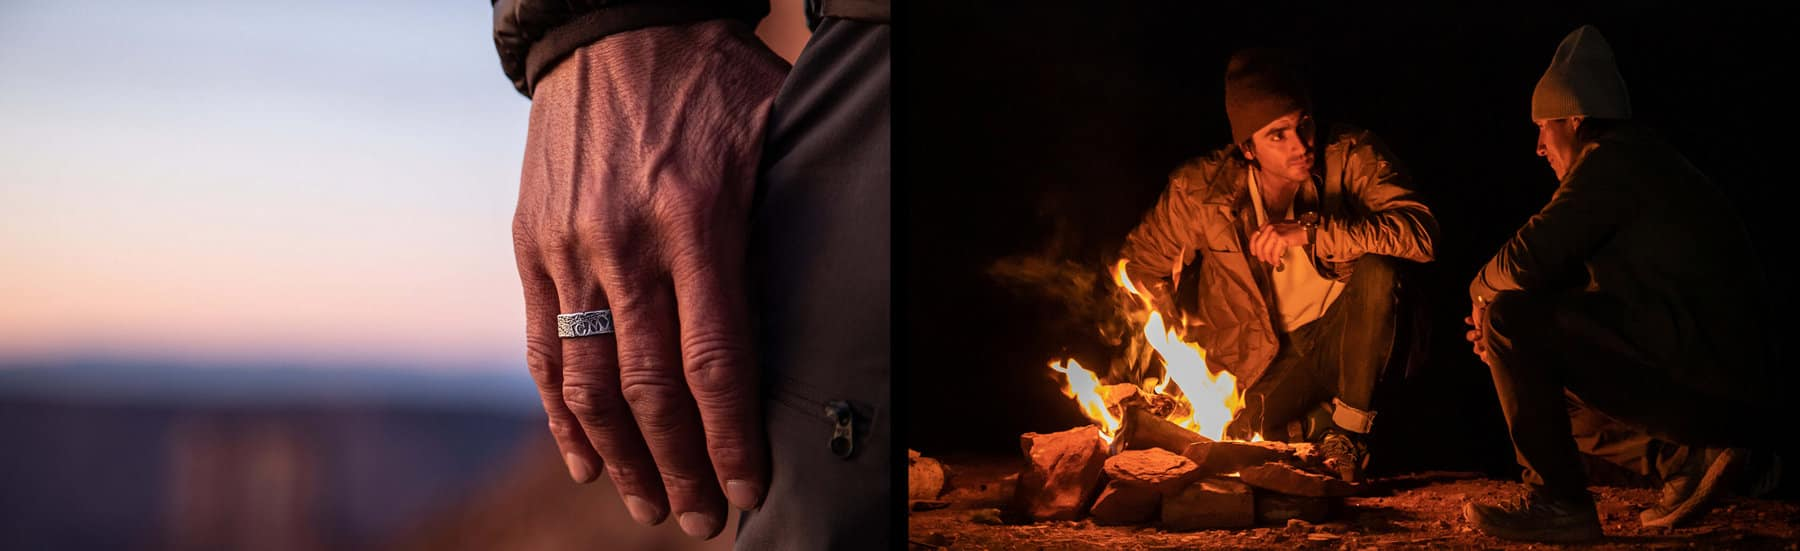 Two color photos are placed side by side. On the left is a close-up image of a man's hand with his thumb in his pocket wearing a David Yurman Shipwreck band. On the right is an image of Sam Elias and Jimmy Chin sitting by a campfire outdoors.